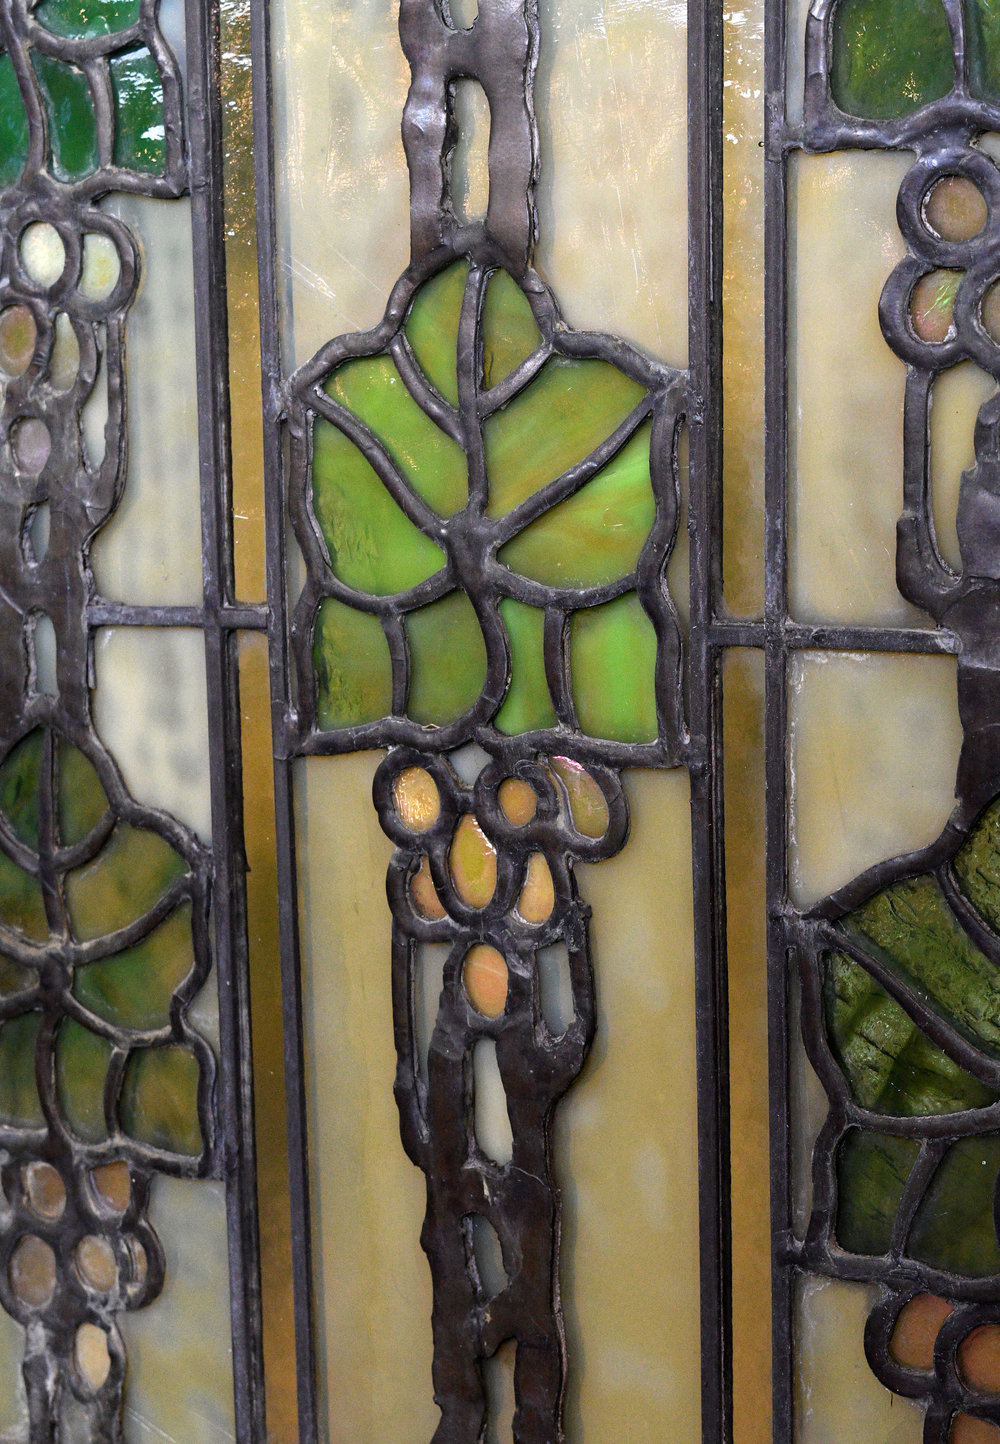 47809-bradstreet-grape-leaves-window-natural-detail.jpg